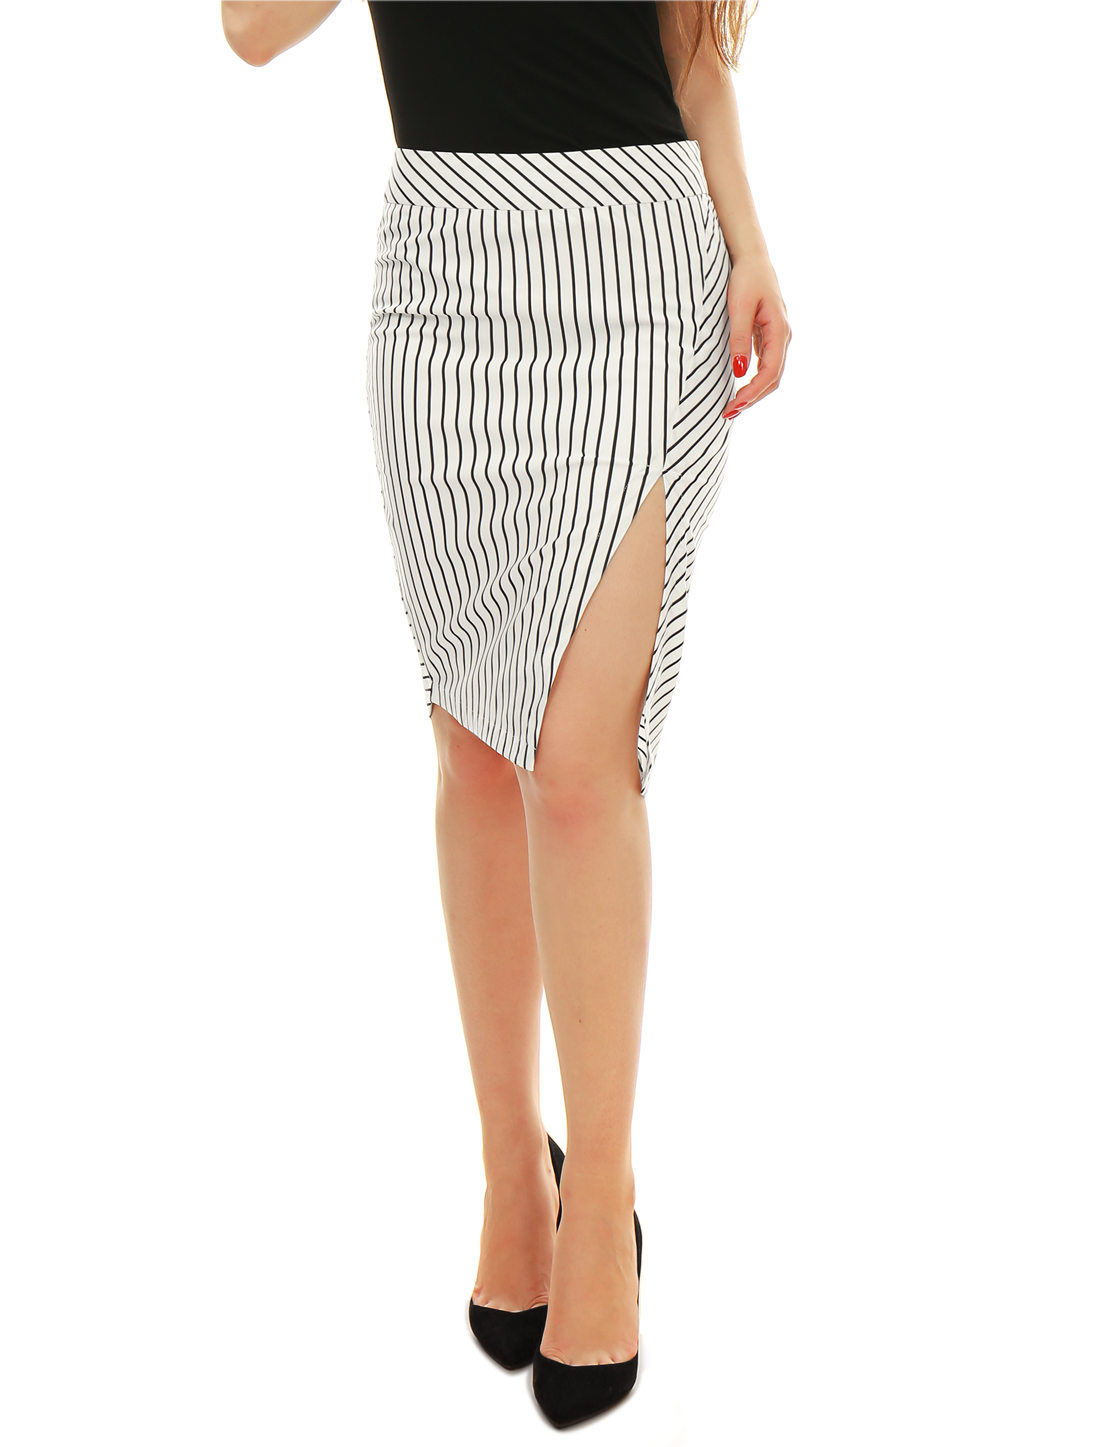 Woman Bar Striped High Vent Asymmetric Hem Pencil Skirt Black White M